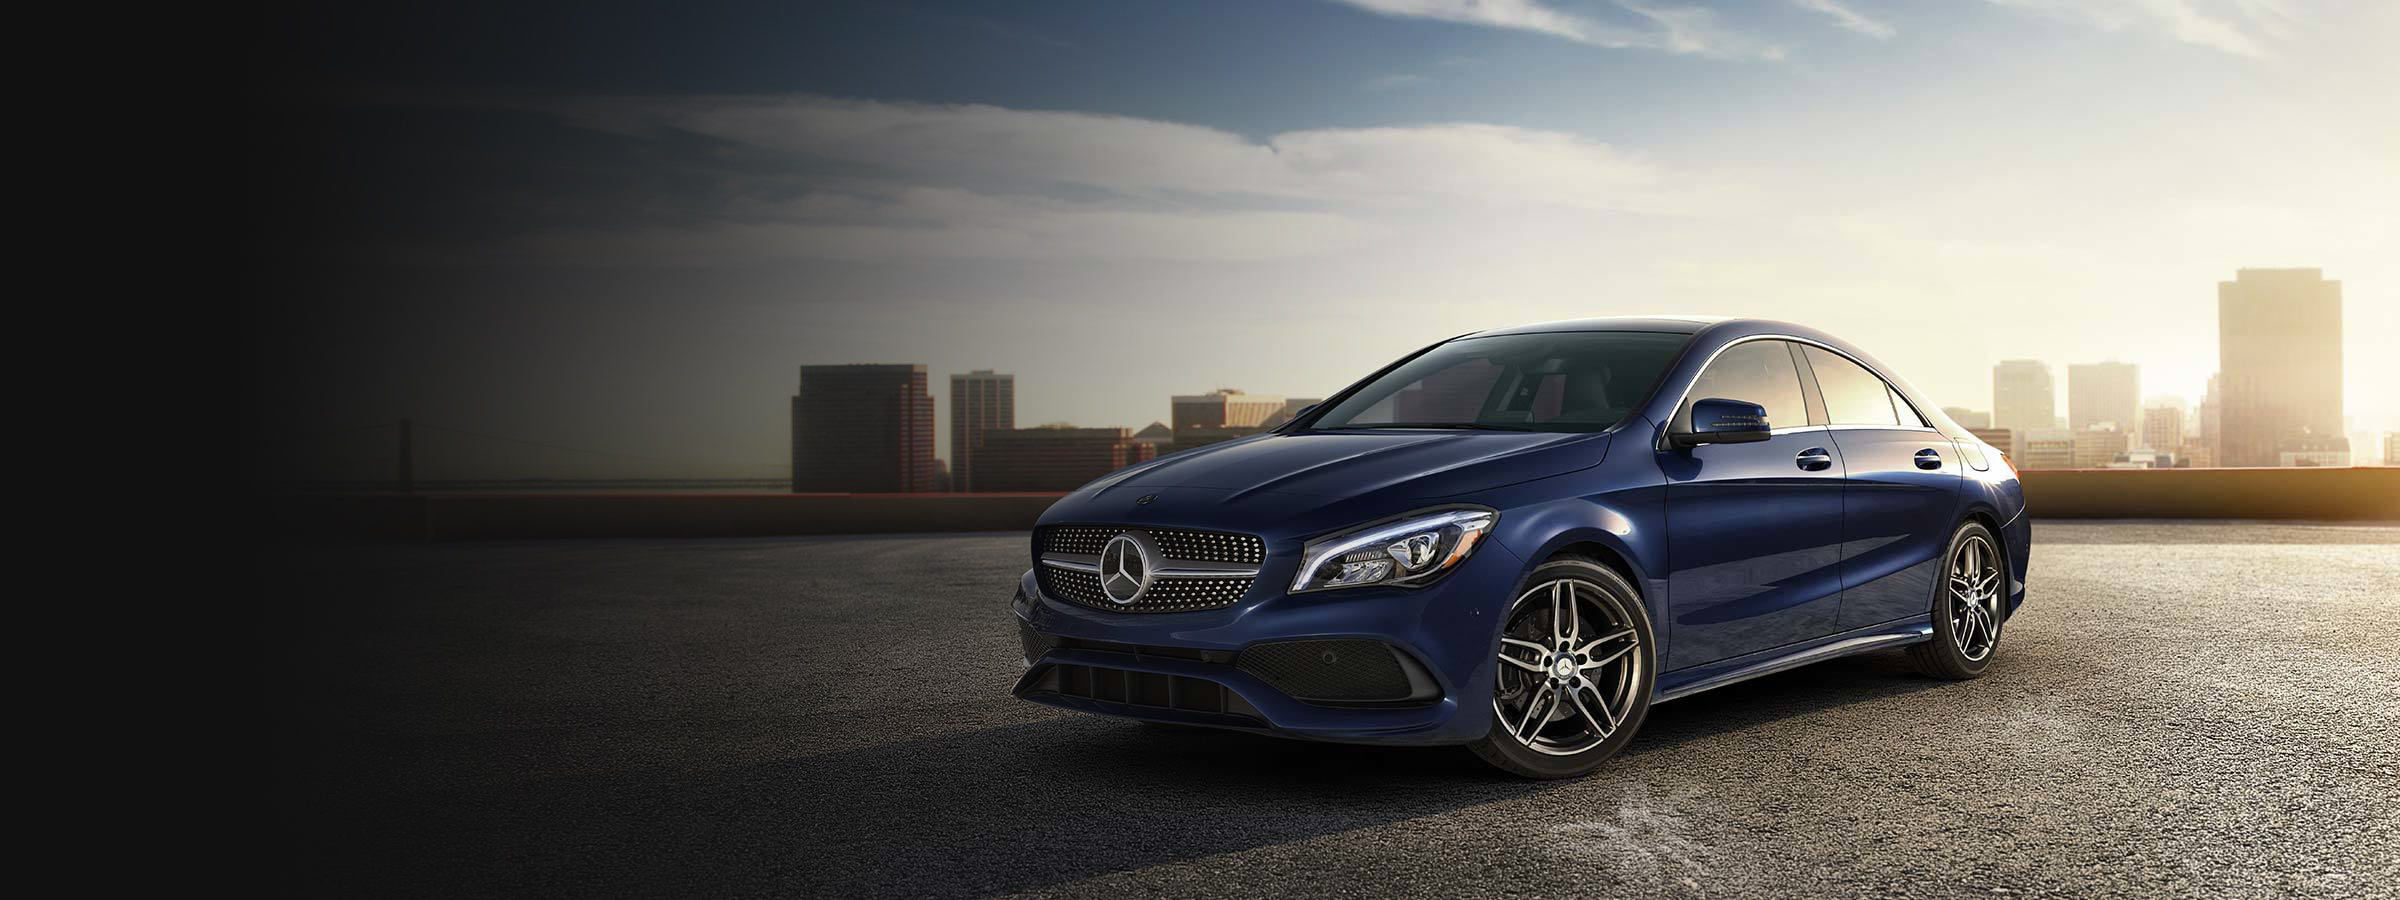 The 2019 CLA 4-door Coupe